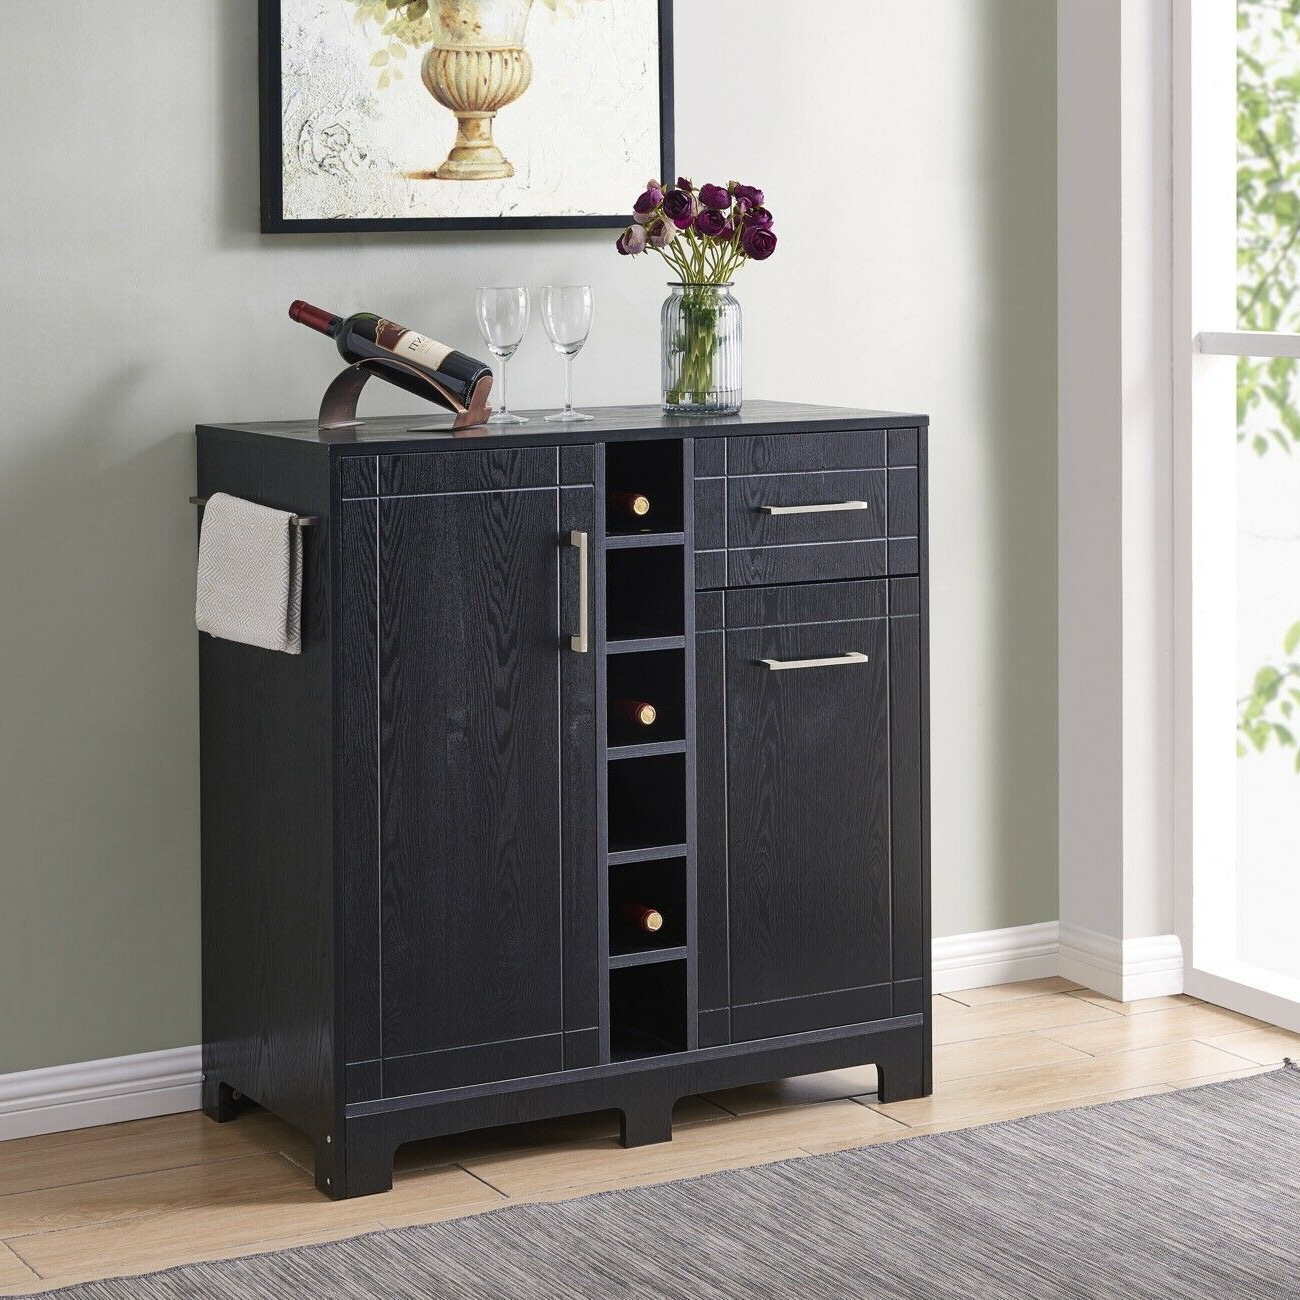 Modern Buffet Server Sideboard Bar Cabinet With Wine Storage And Racks,  Black Pertaining To Modern Black Storage Buffets (View 15 of 20)